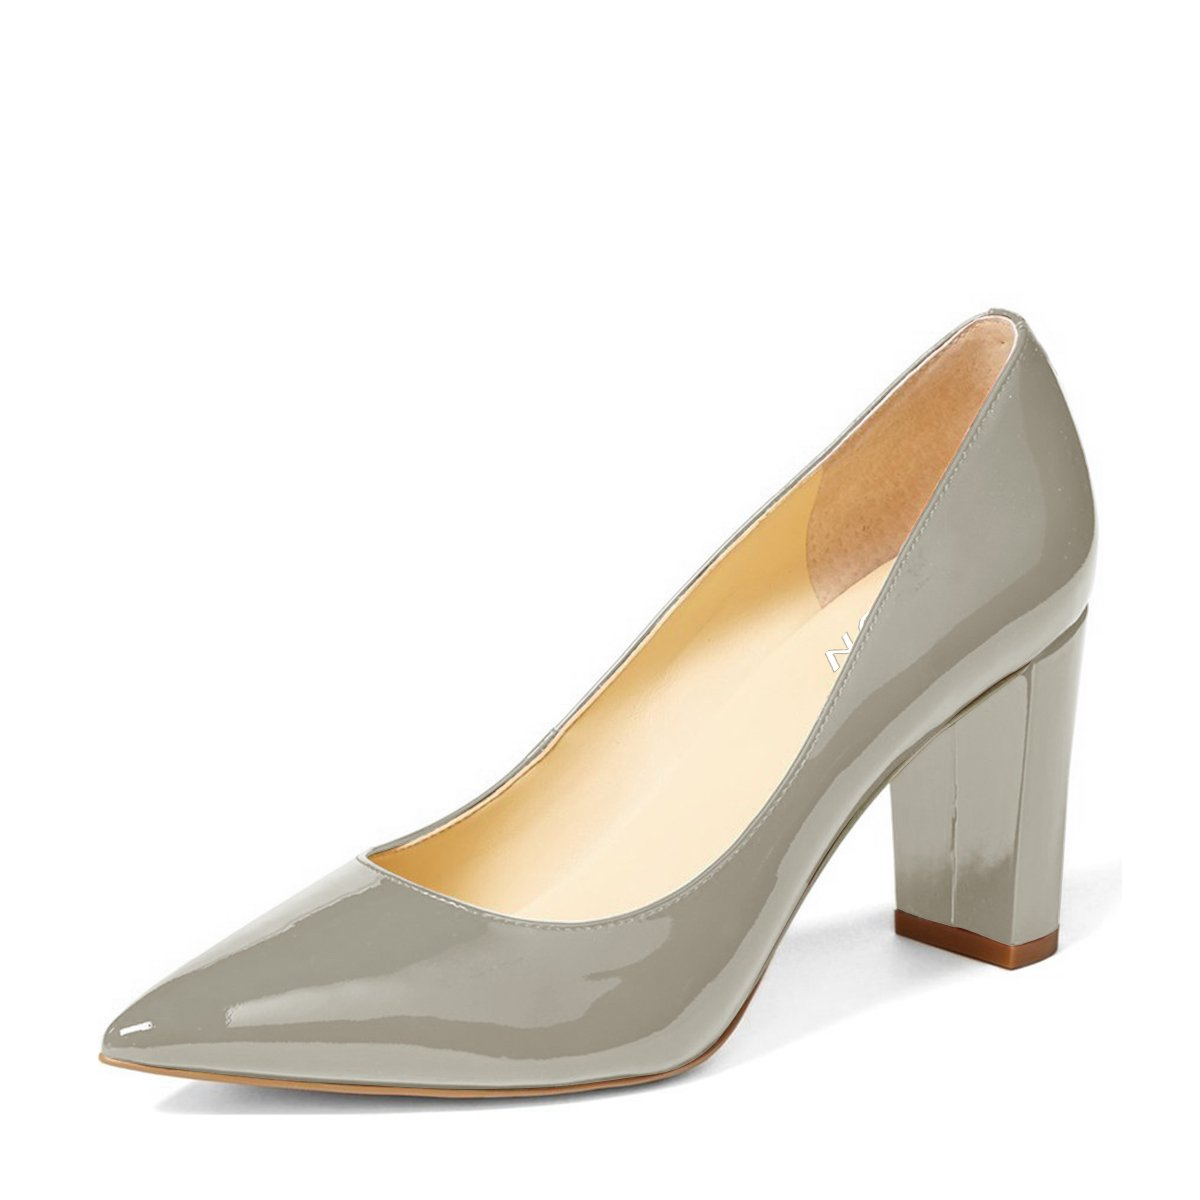 YDN Women's Classic Pointy Toe OL Pumps Slip-On Patent Leather Block Heel Dress Shoes B01MRP39VY 13 B(M) US|Grey